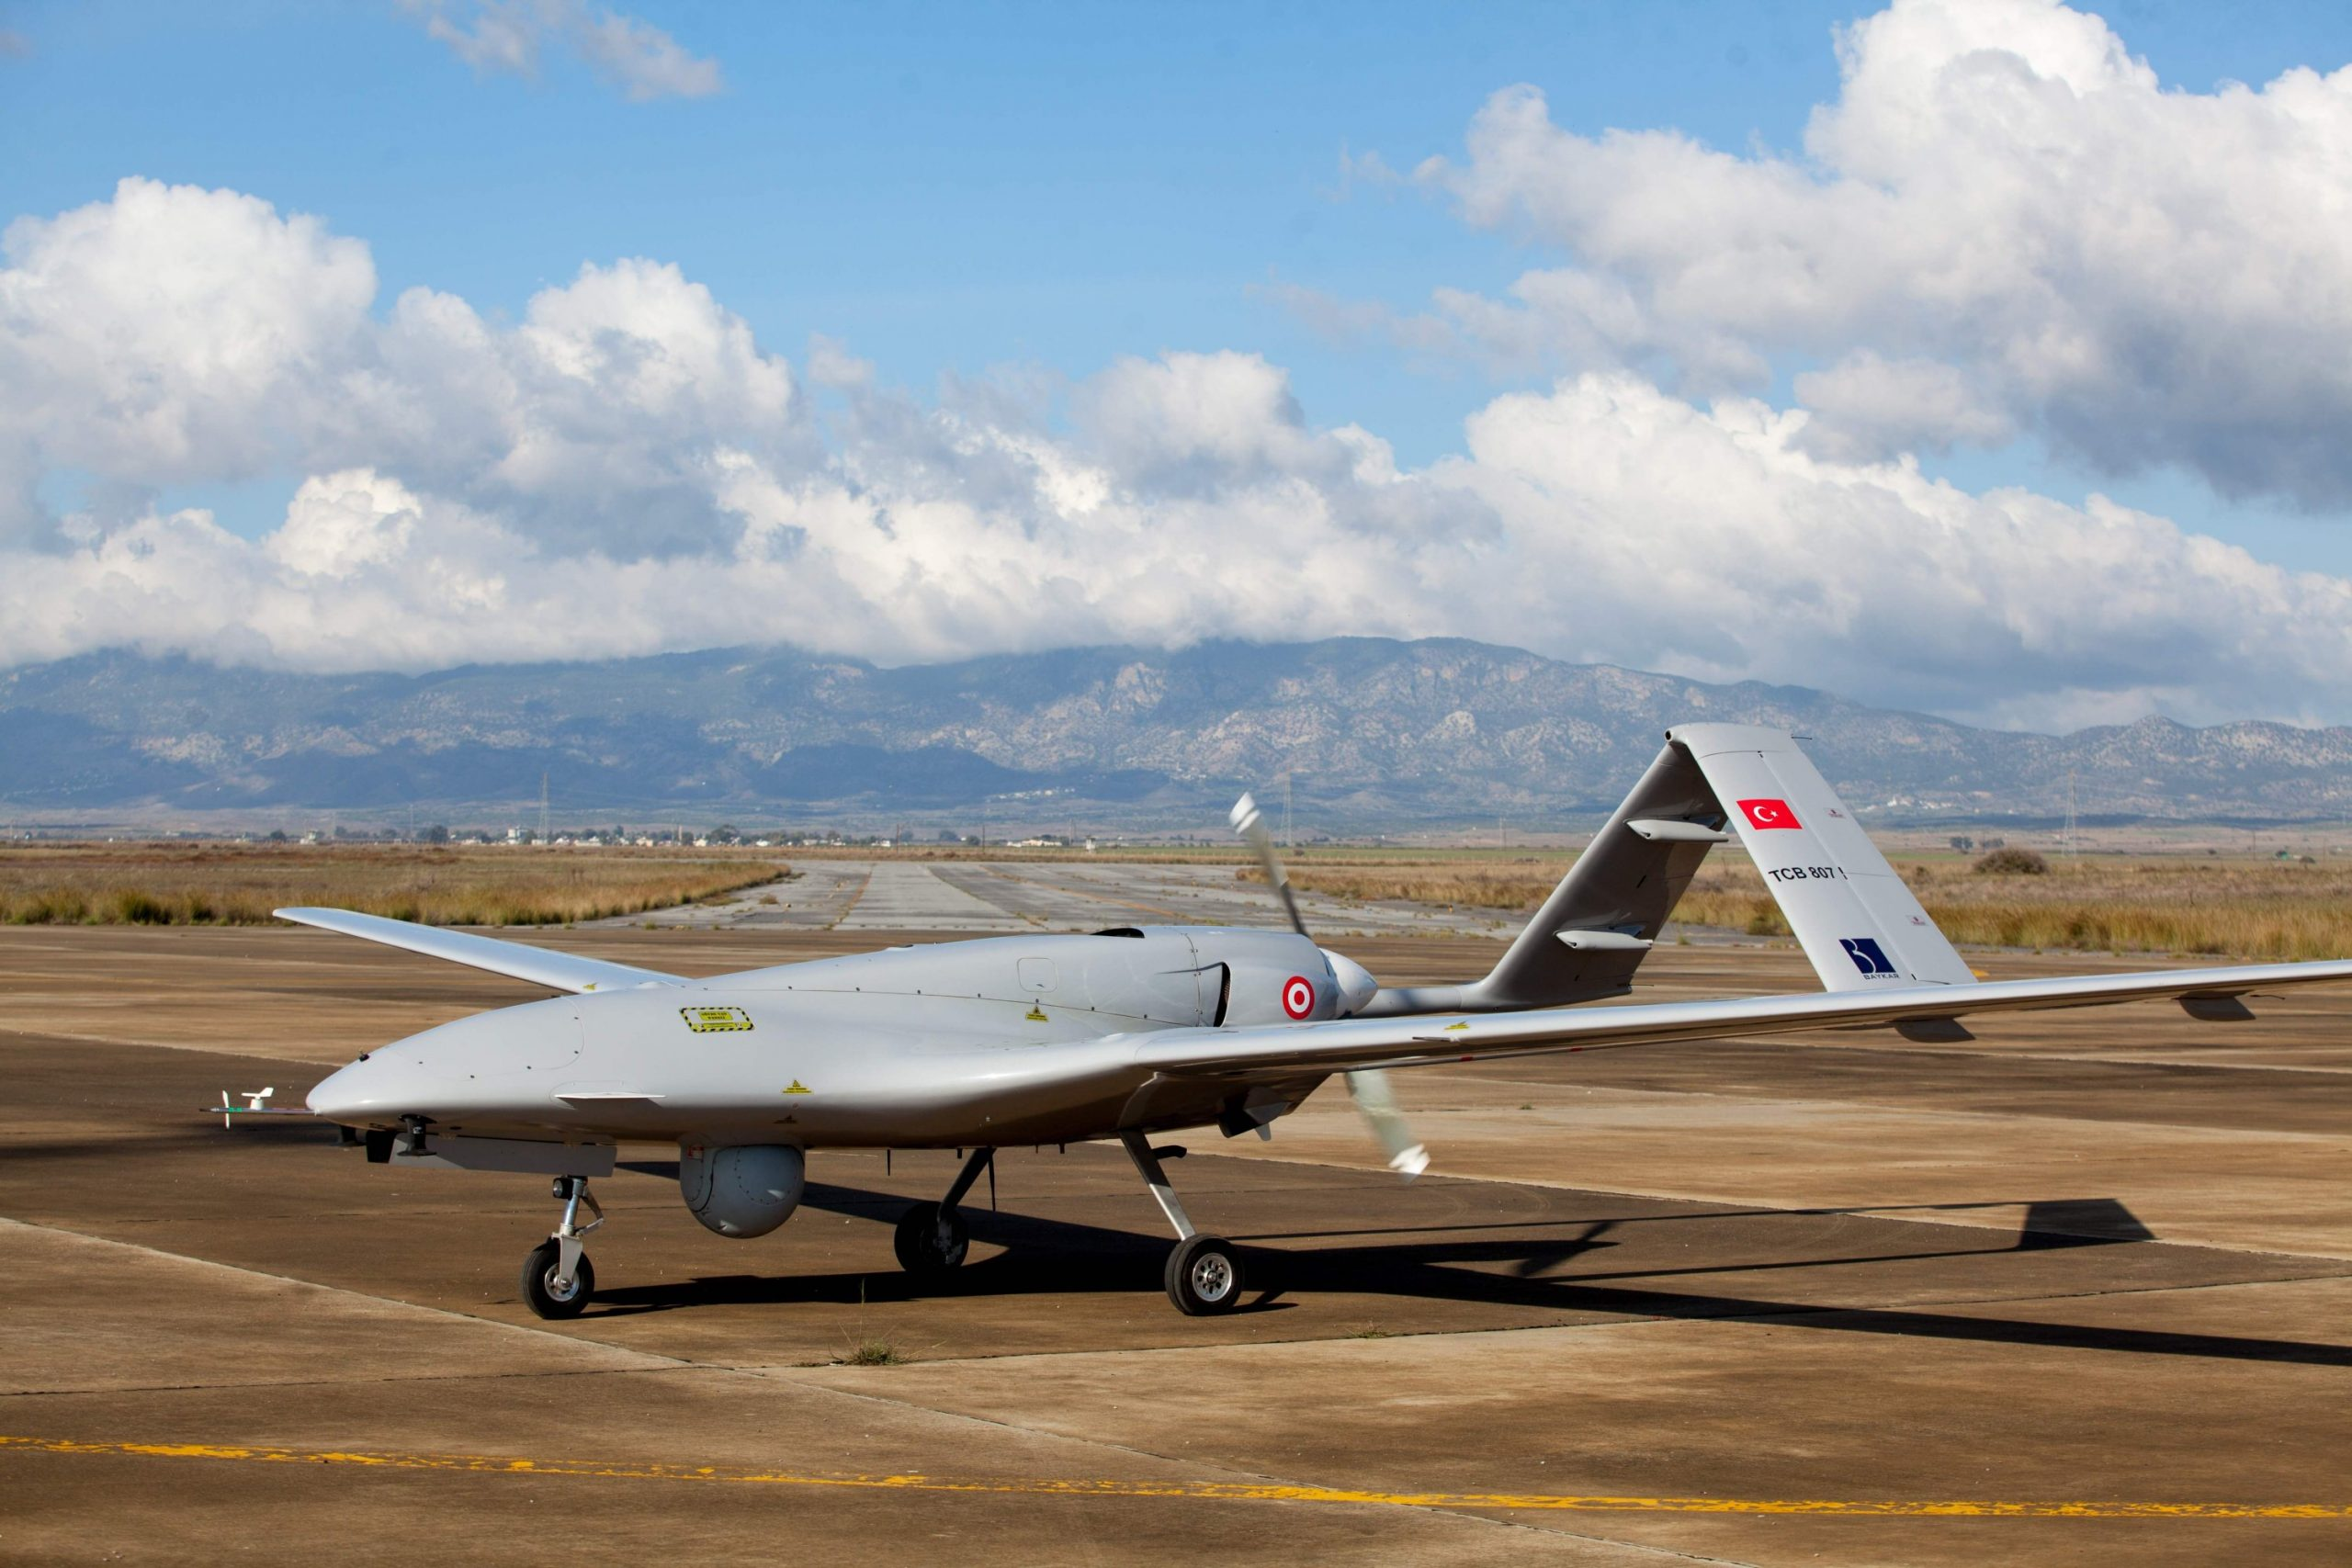 Bombardier And Others Prohibit Sales Of Parts For Turkey's Bayraktar TB2 UAVs